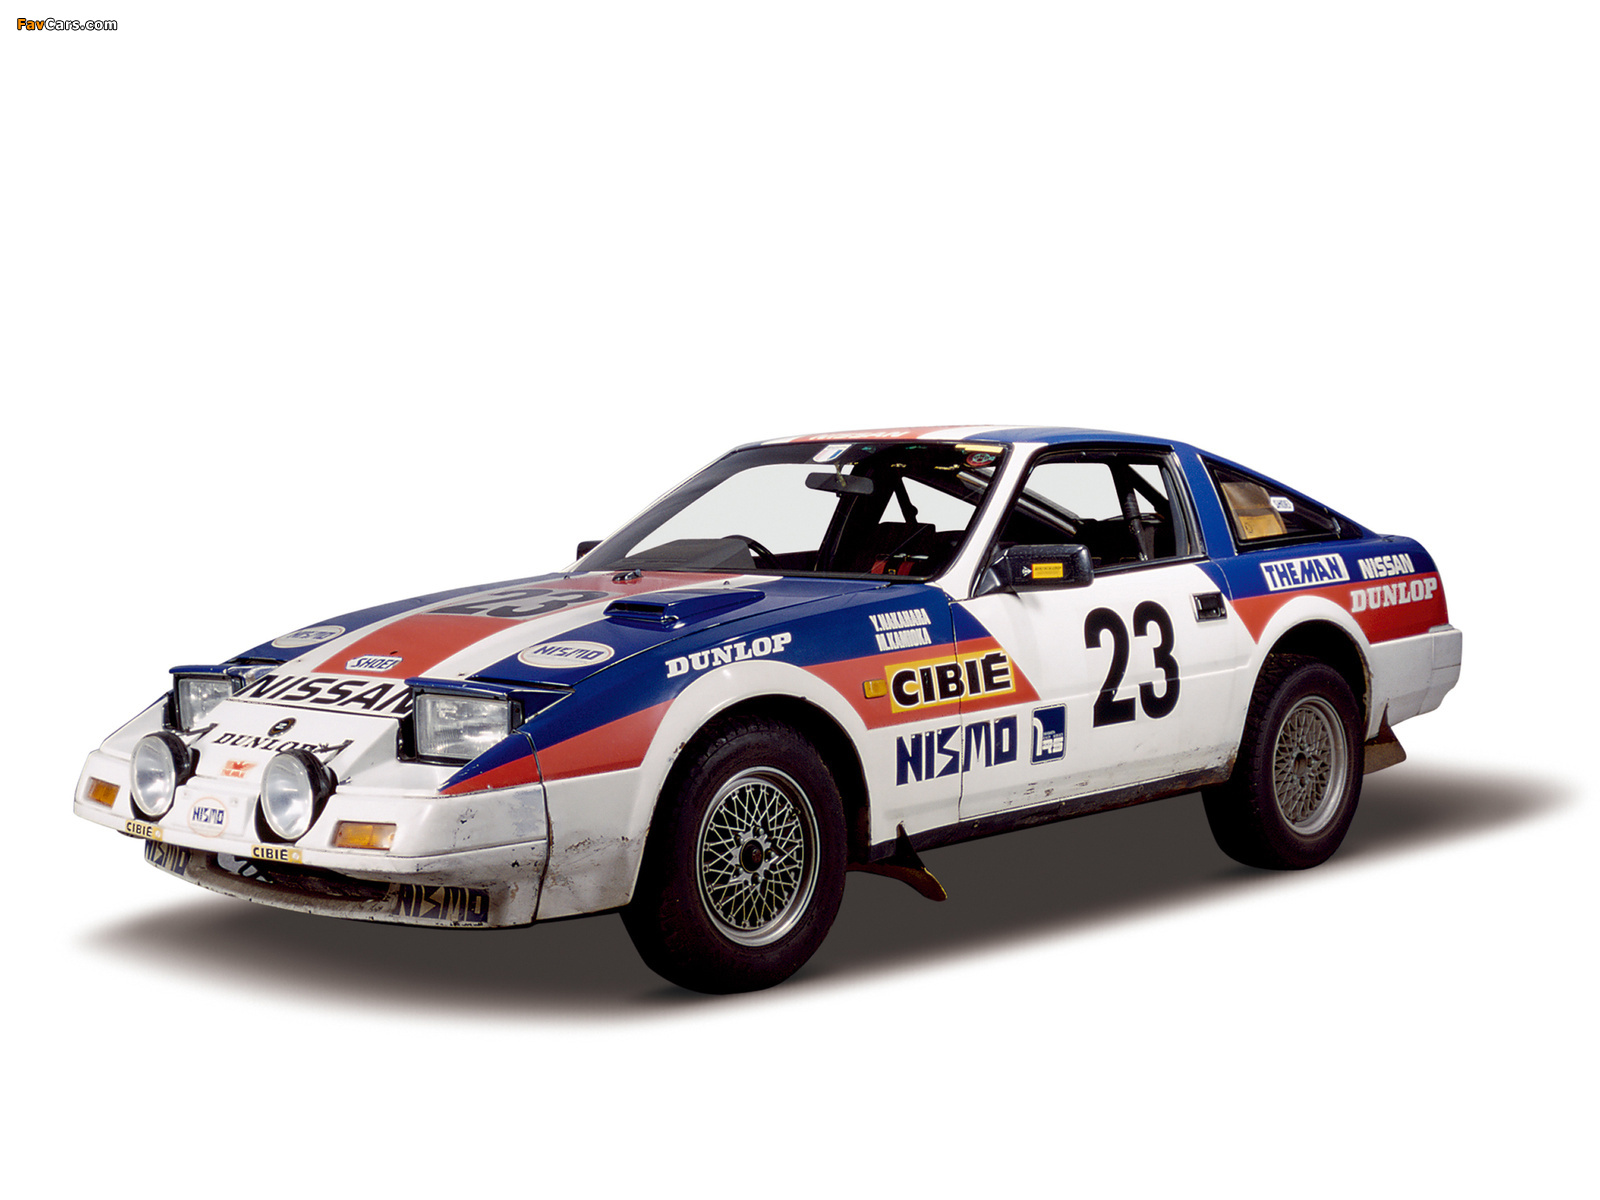 Of nissan fairlady z rally car hz31 198385 images of nissan fairlady z rally car hz31 198385 vanachro Choice Image